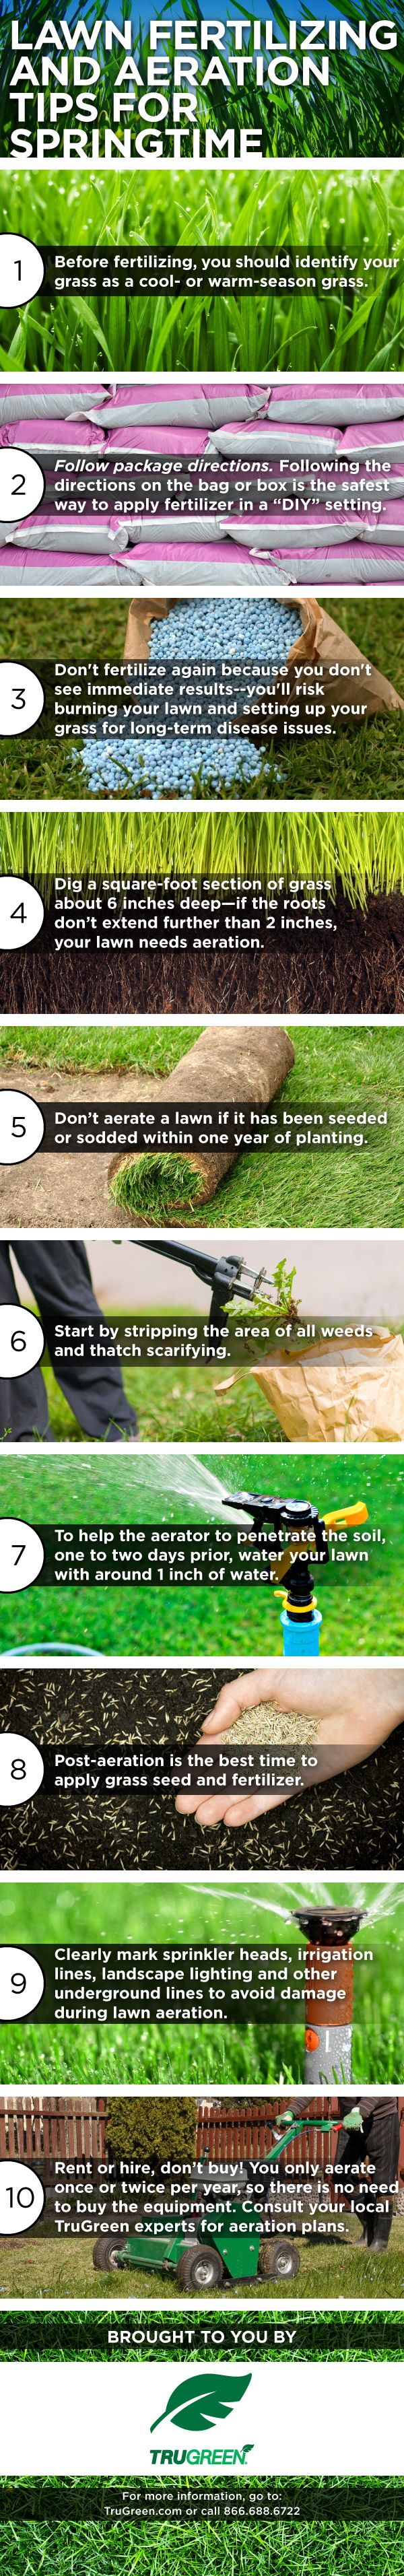 Best way to plant grass seed - Lawn Fertilizing And Aeration Tips For Springtime Try These Simple Lawn Fertilizing And Aeration Tips To Ensure You Maintain Lush Green Grass During The